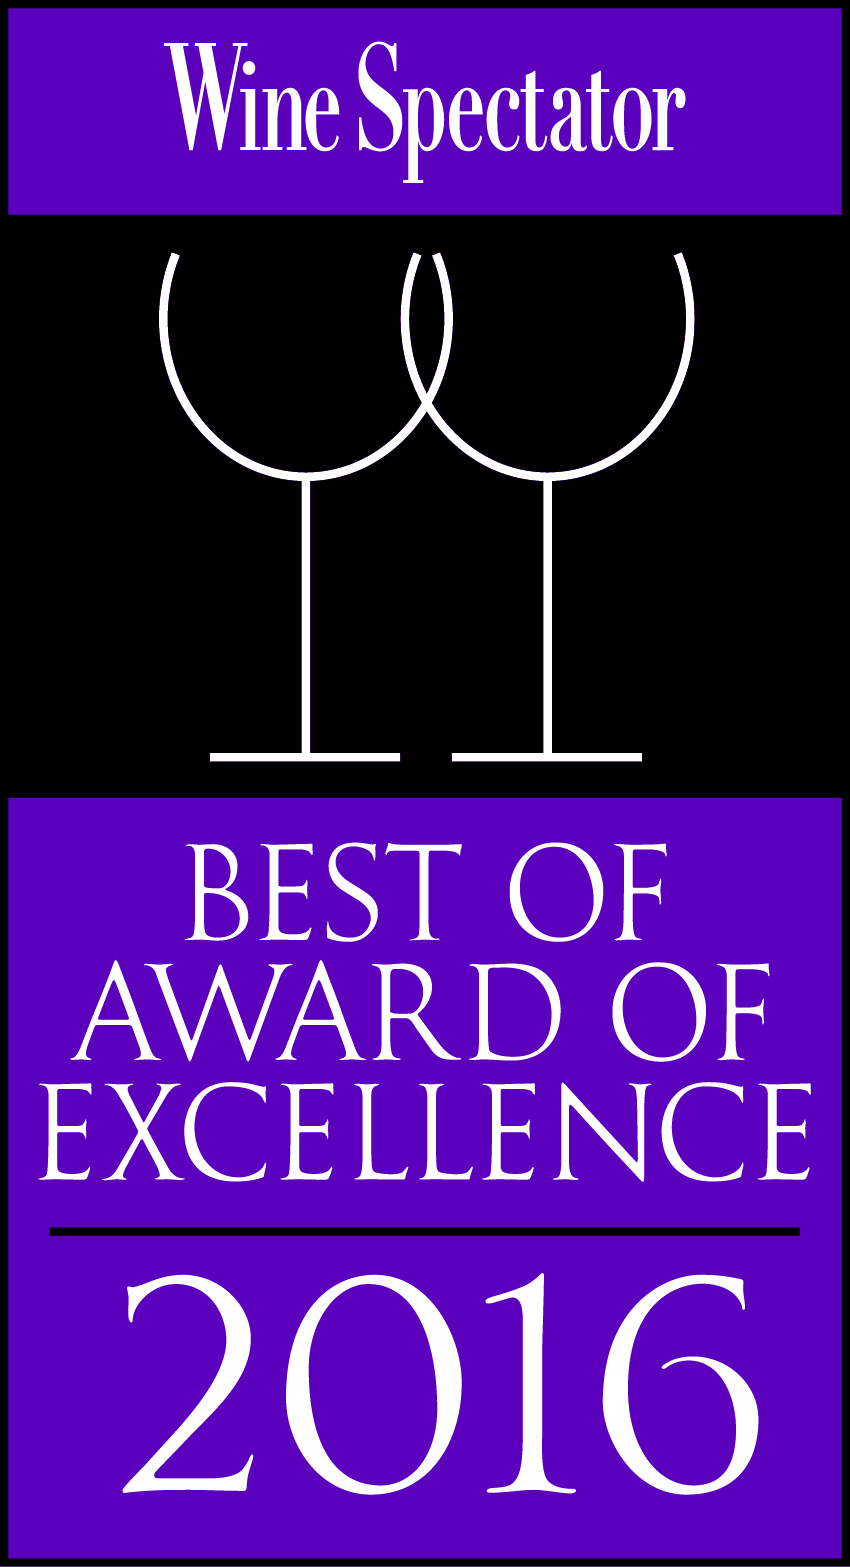 Galaxy restaurant receives best of award of excellence from wine galaxy restaurant receives best of award of excellence from wine spectator altavistaventures Image collections